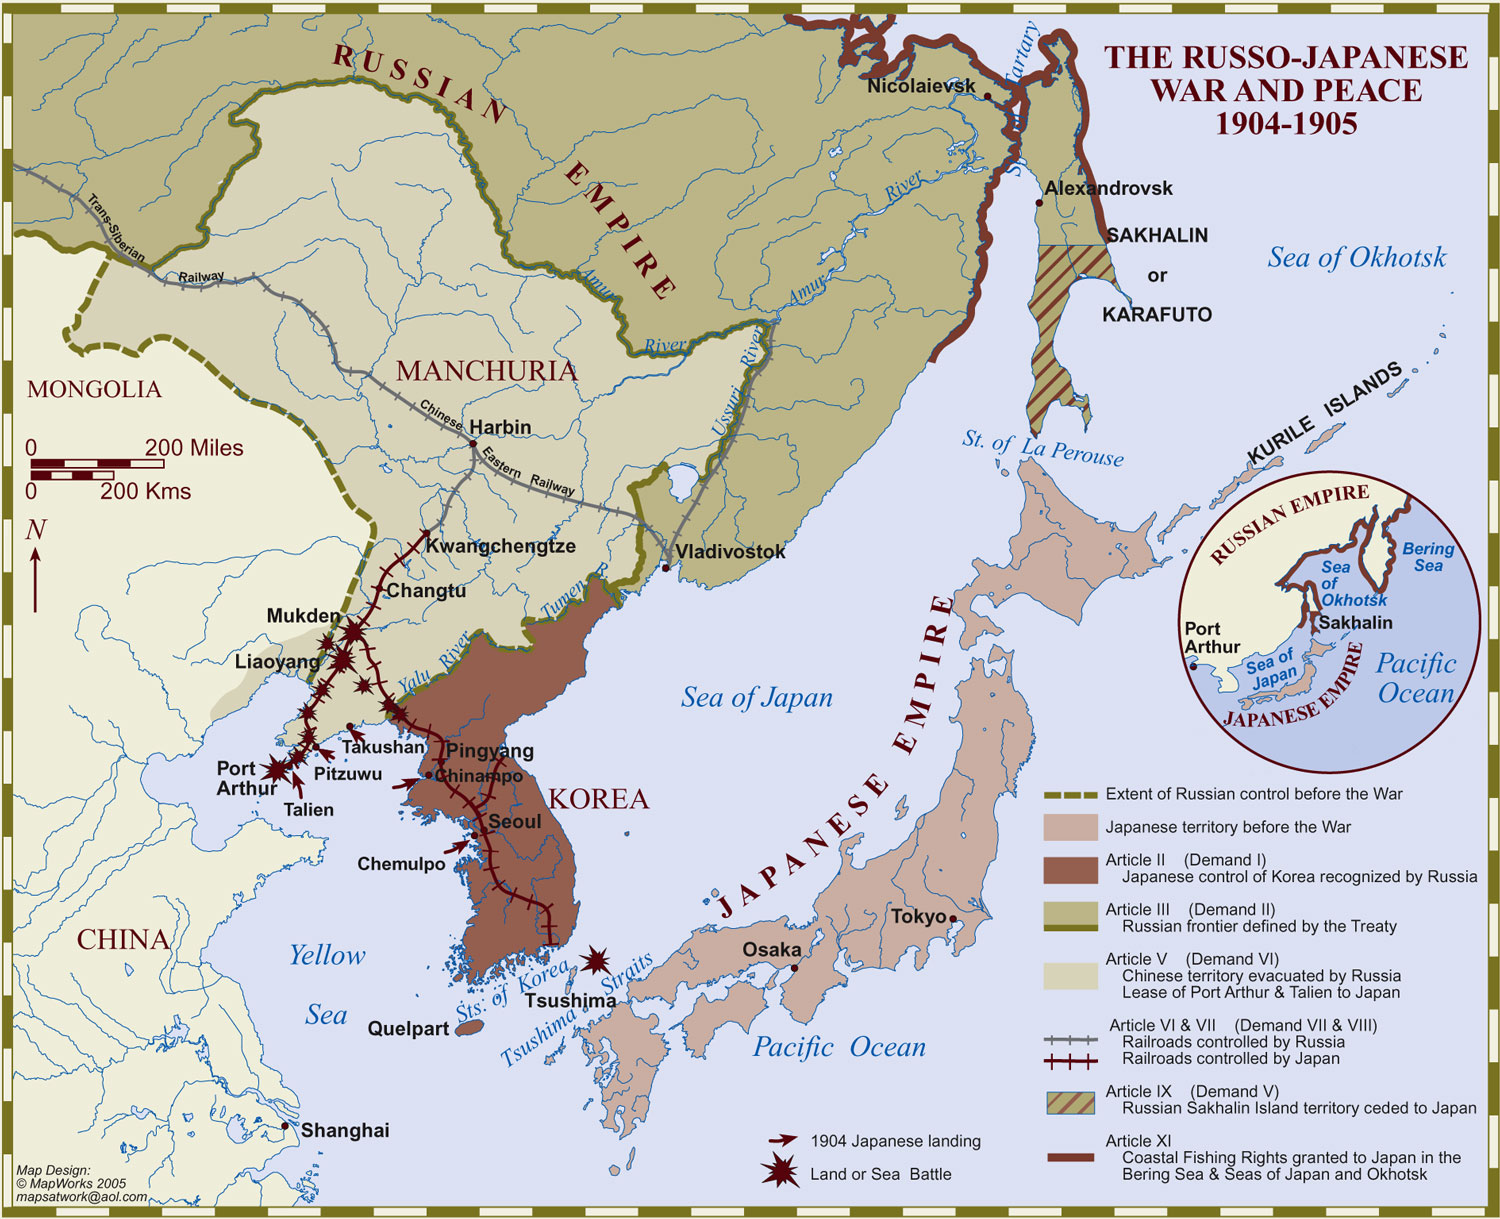 korea: the russo-japanese war and the protectorate | weapons and warfare